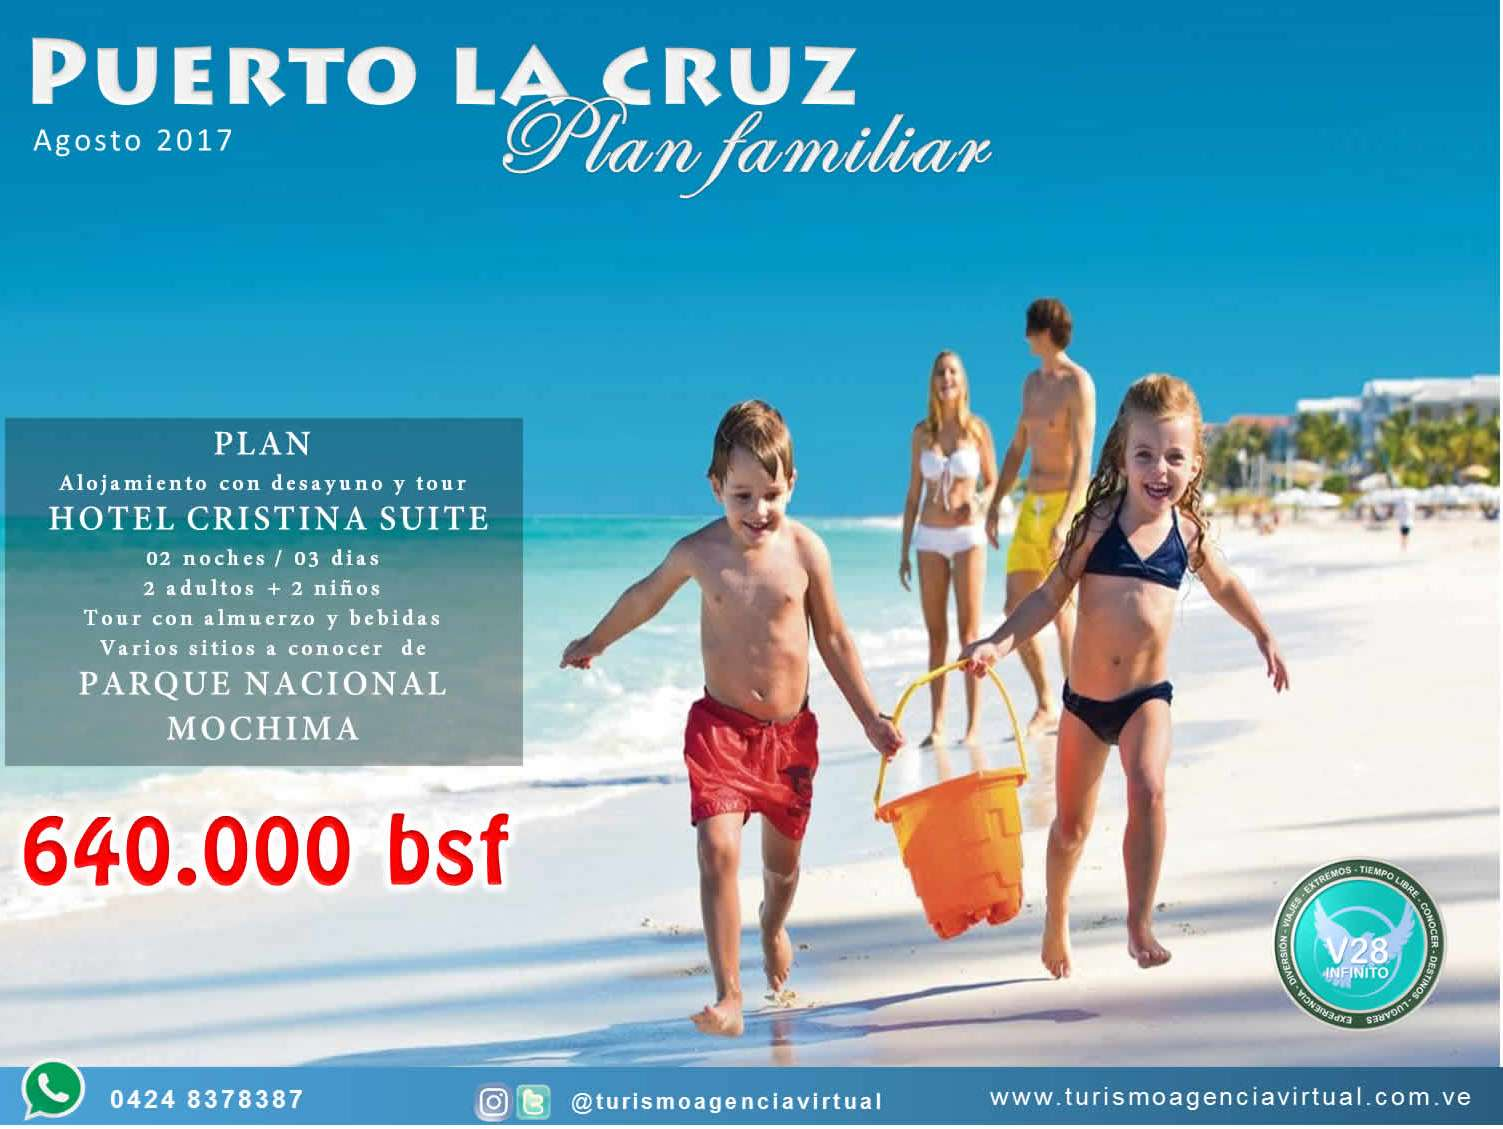 Puerto la cruz plan familiar agosto 2017